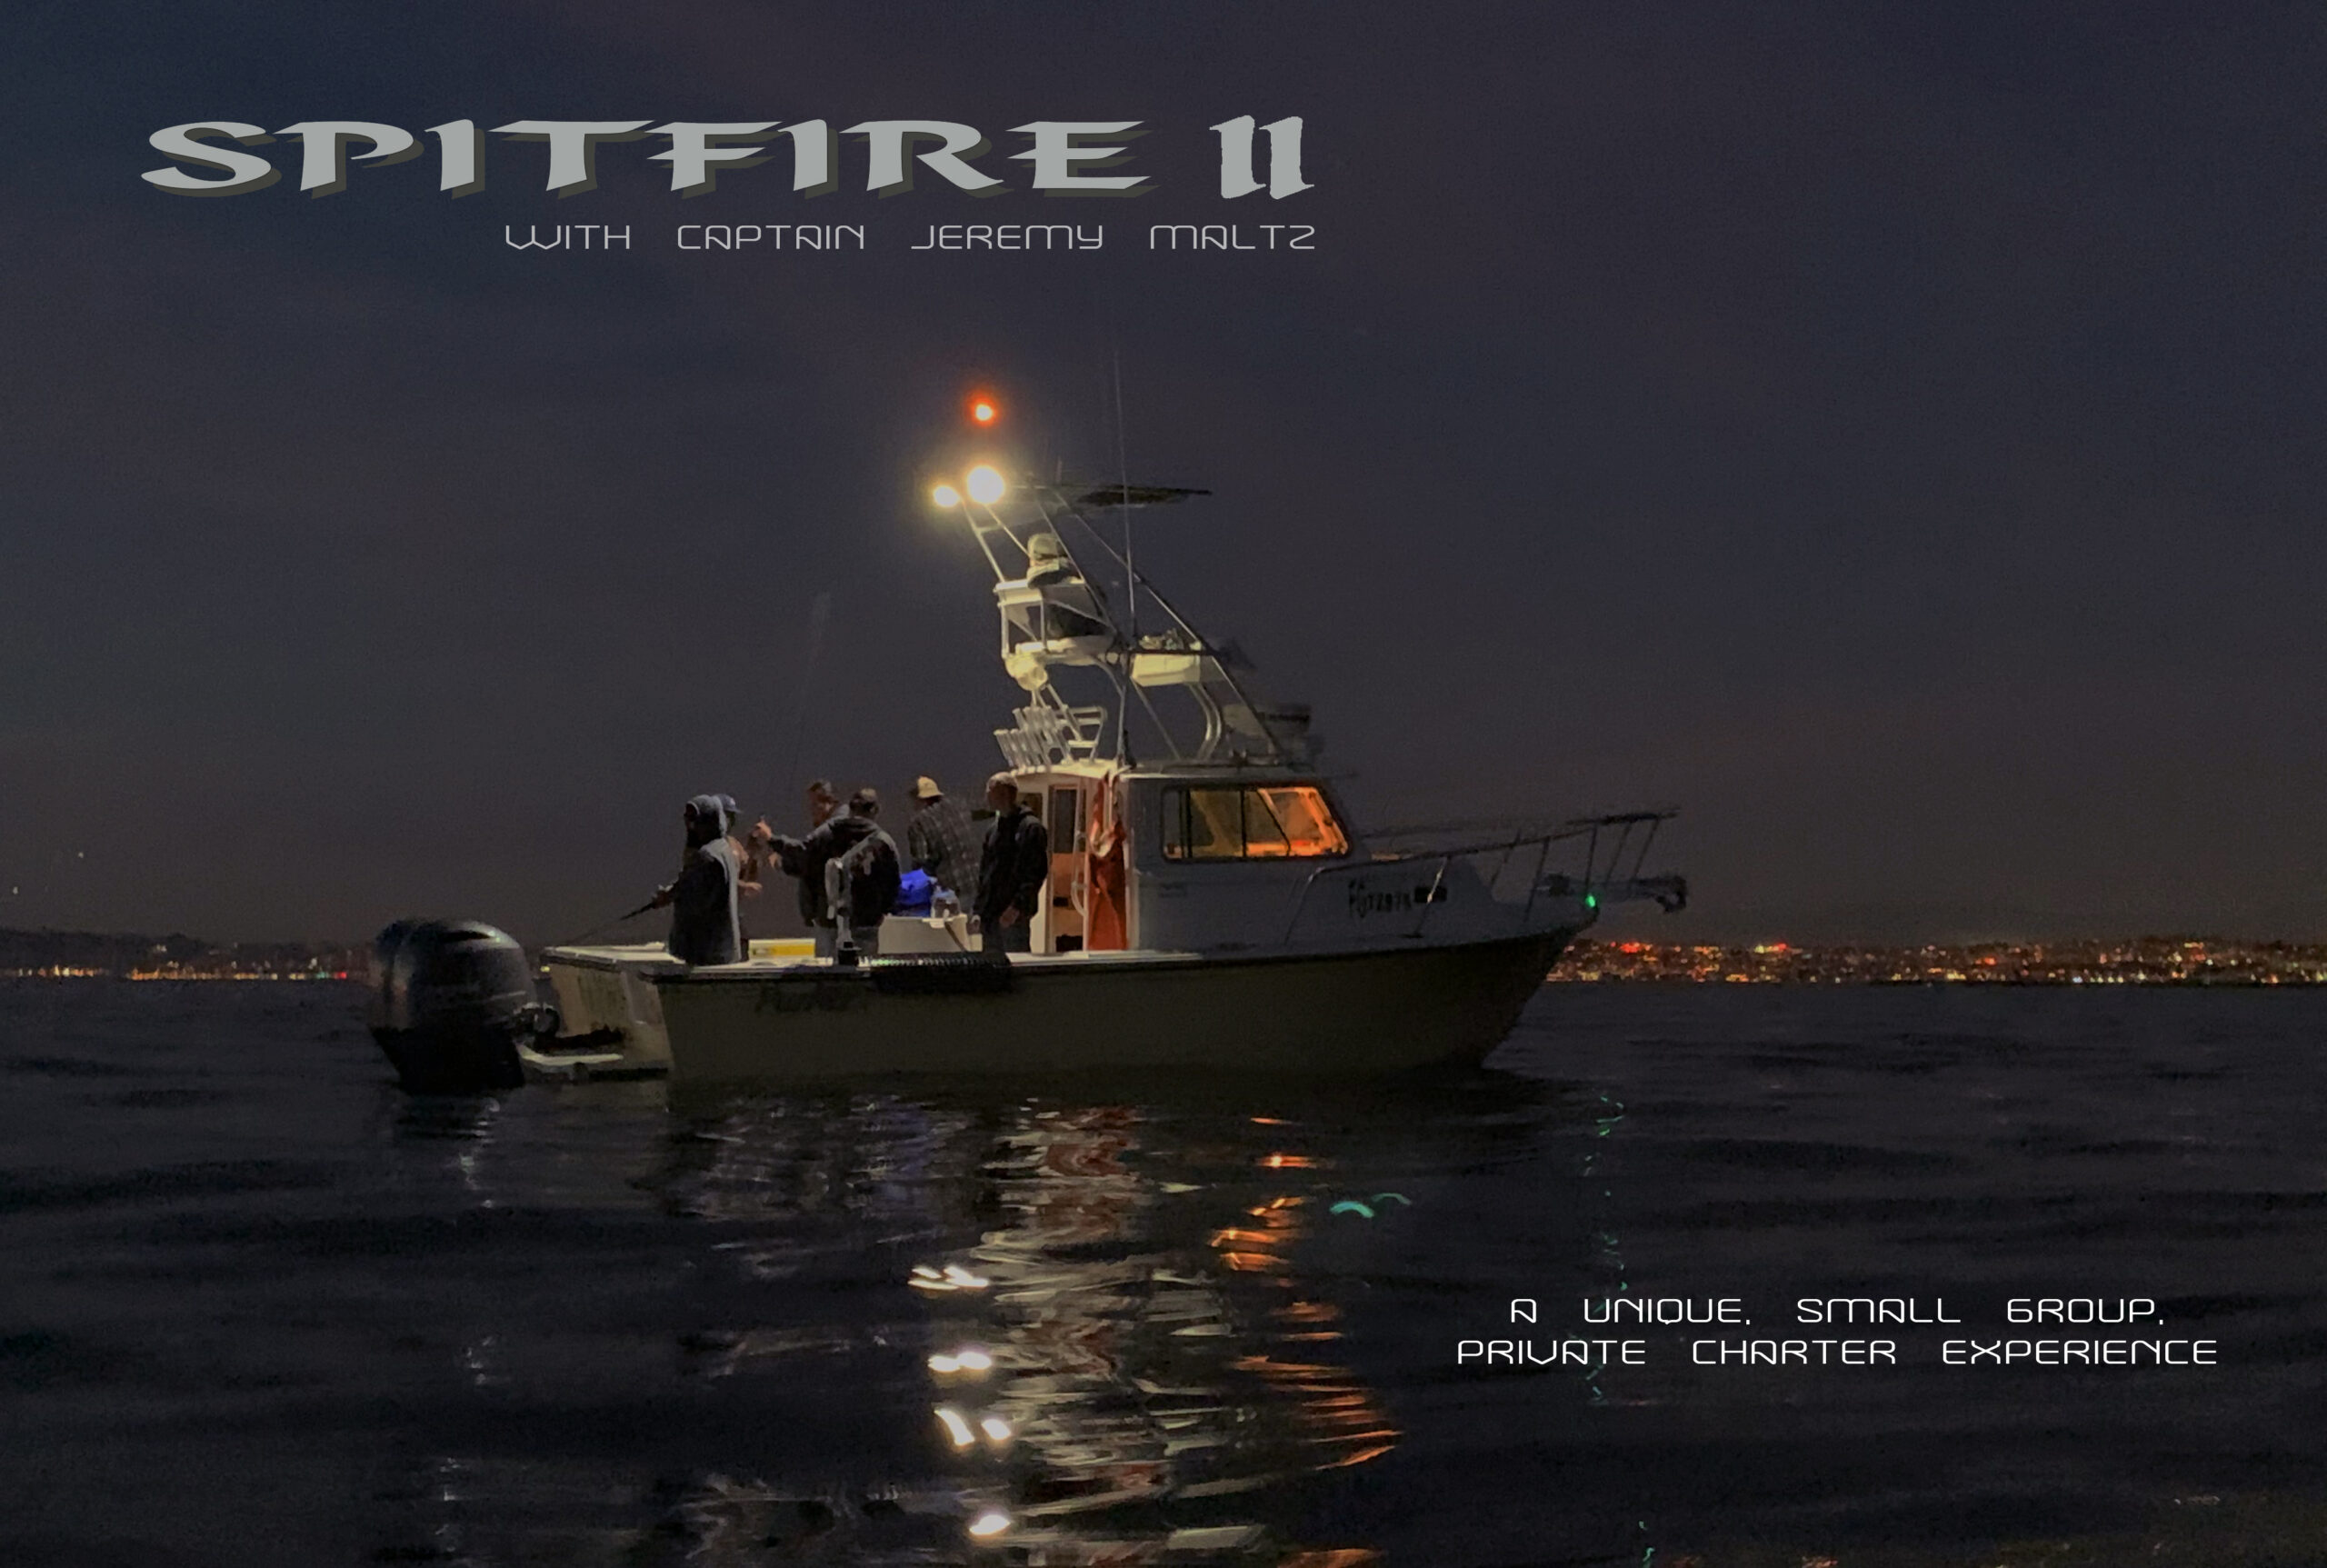 Spitfire_Two_Sportfishing_Feature_Image_Web_Home